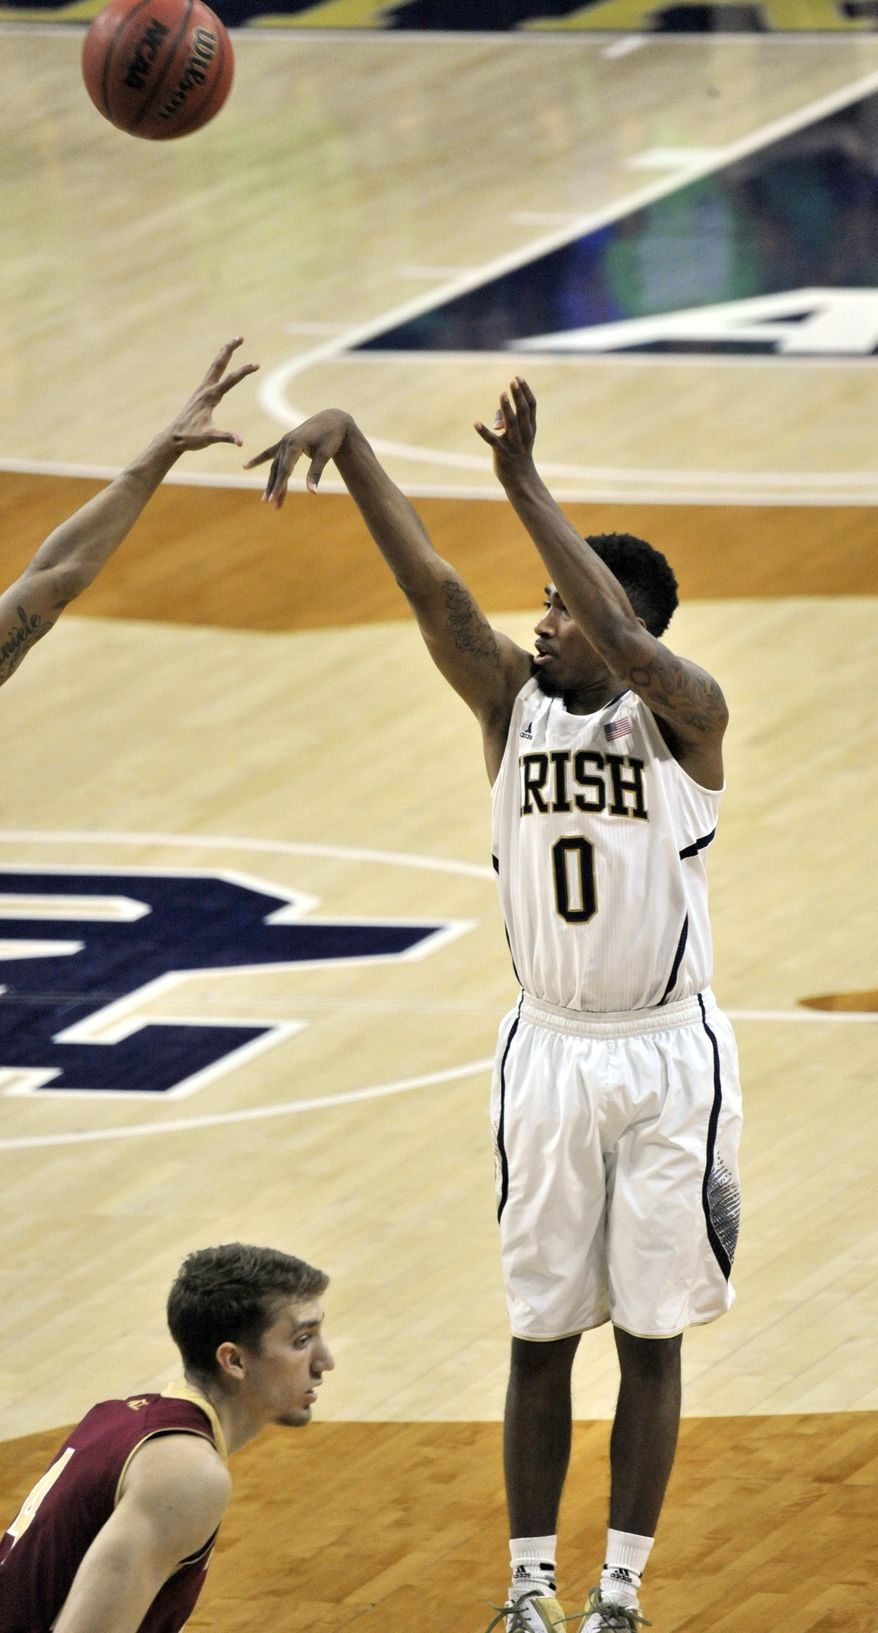 Notre Dame guard Eric Atkins puts up the game-winning shot in overtime of an NCAA college basketball game against Boston College, Saturday, Feb. 1 2014 in South Bend, Ind. Notre Dame won 76-73, with Atkins leading all scorers with 24 points. (AP Photo/Joe Raymond)